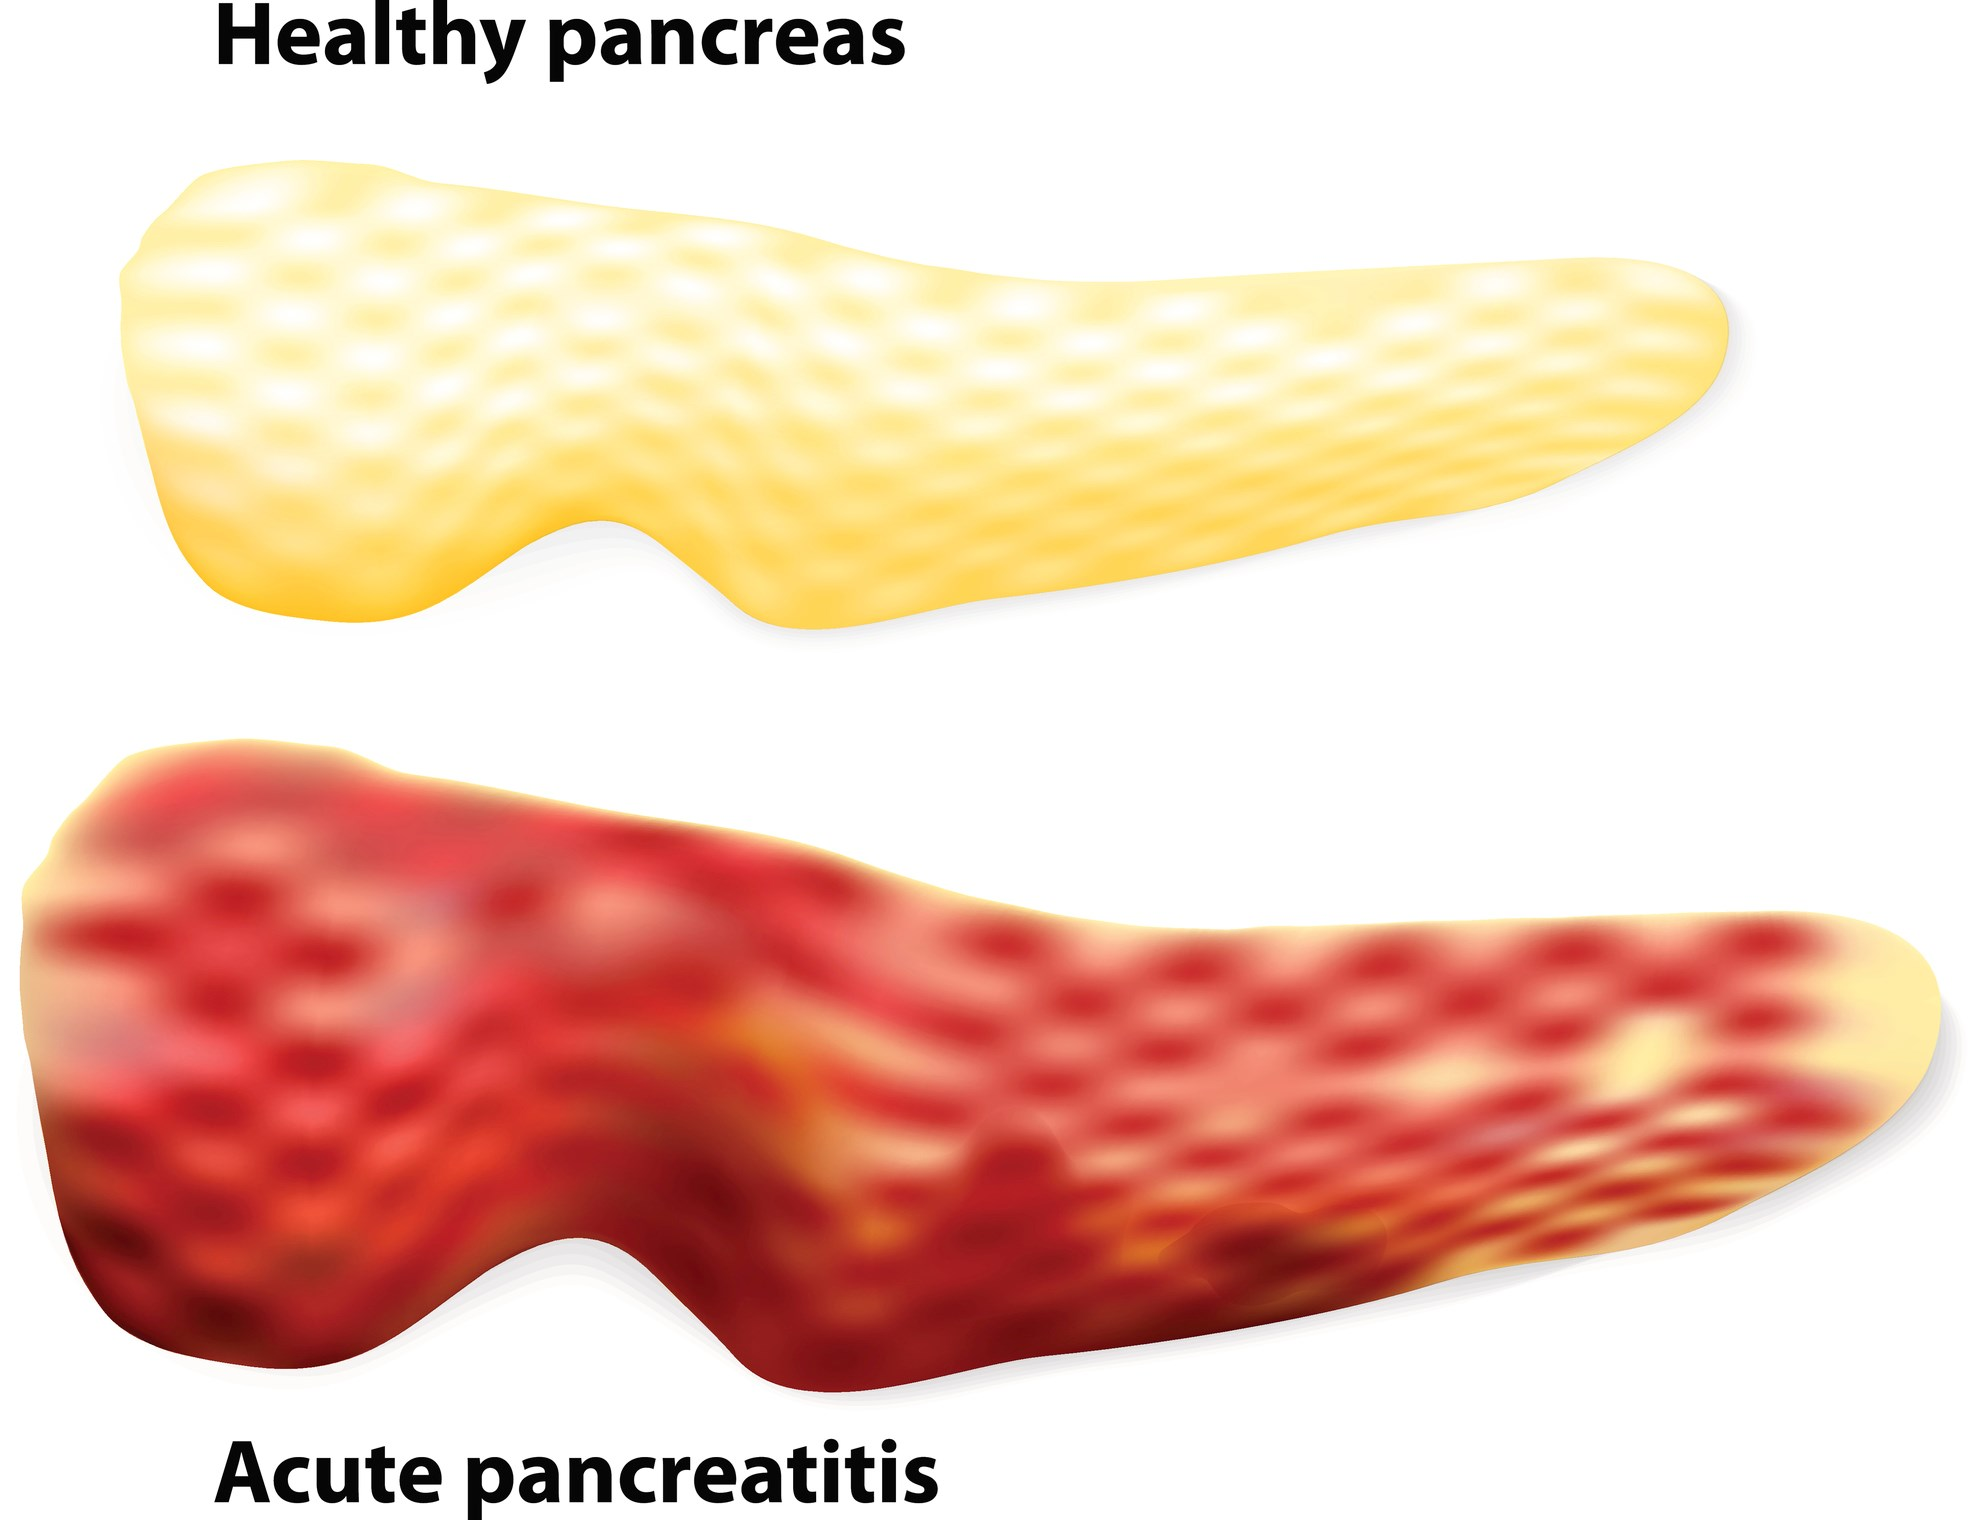 Optimized medical and interventional treatment is associated with significant pain relief from chronic pancreatitis.